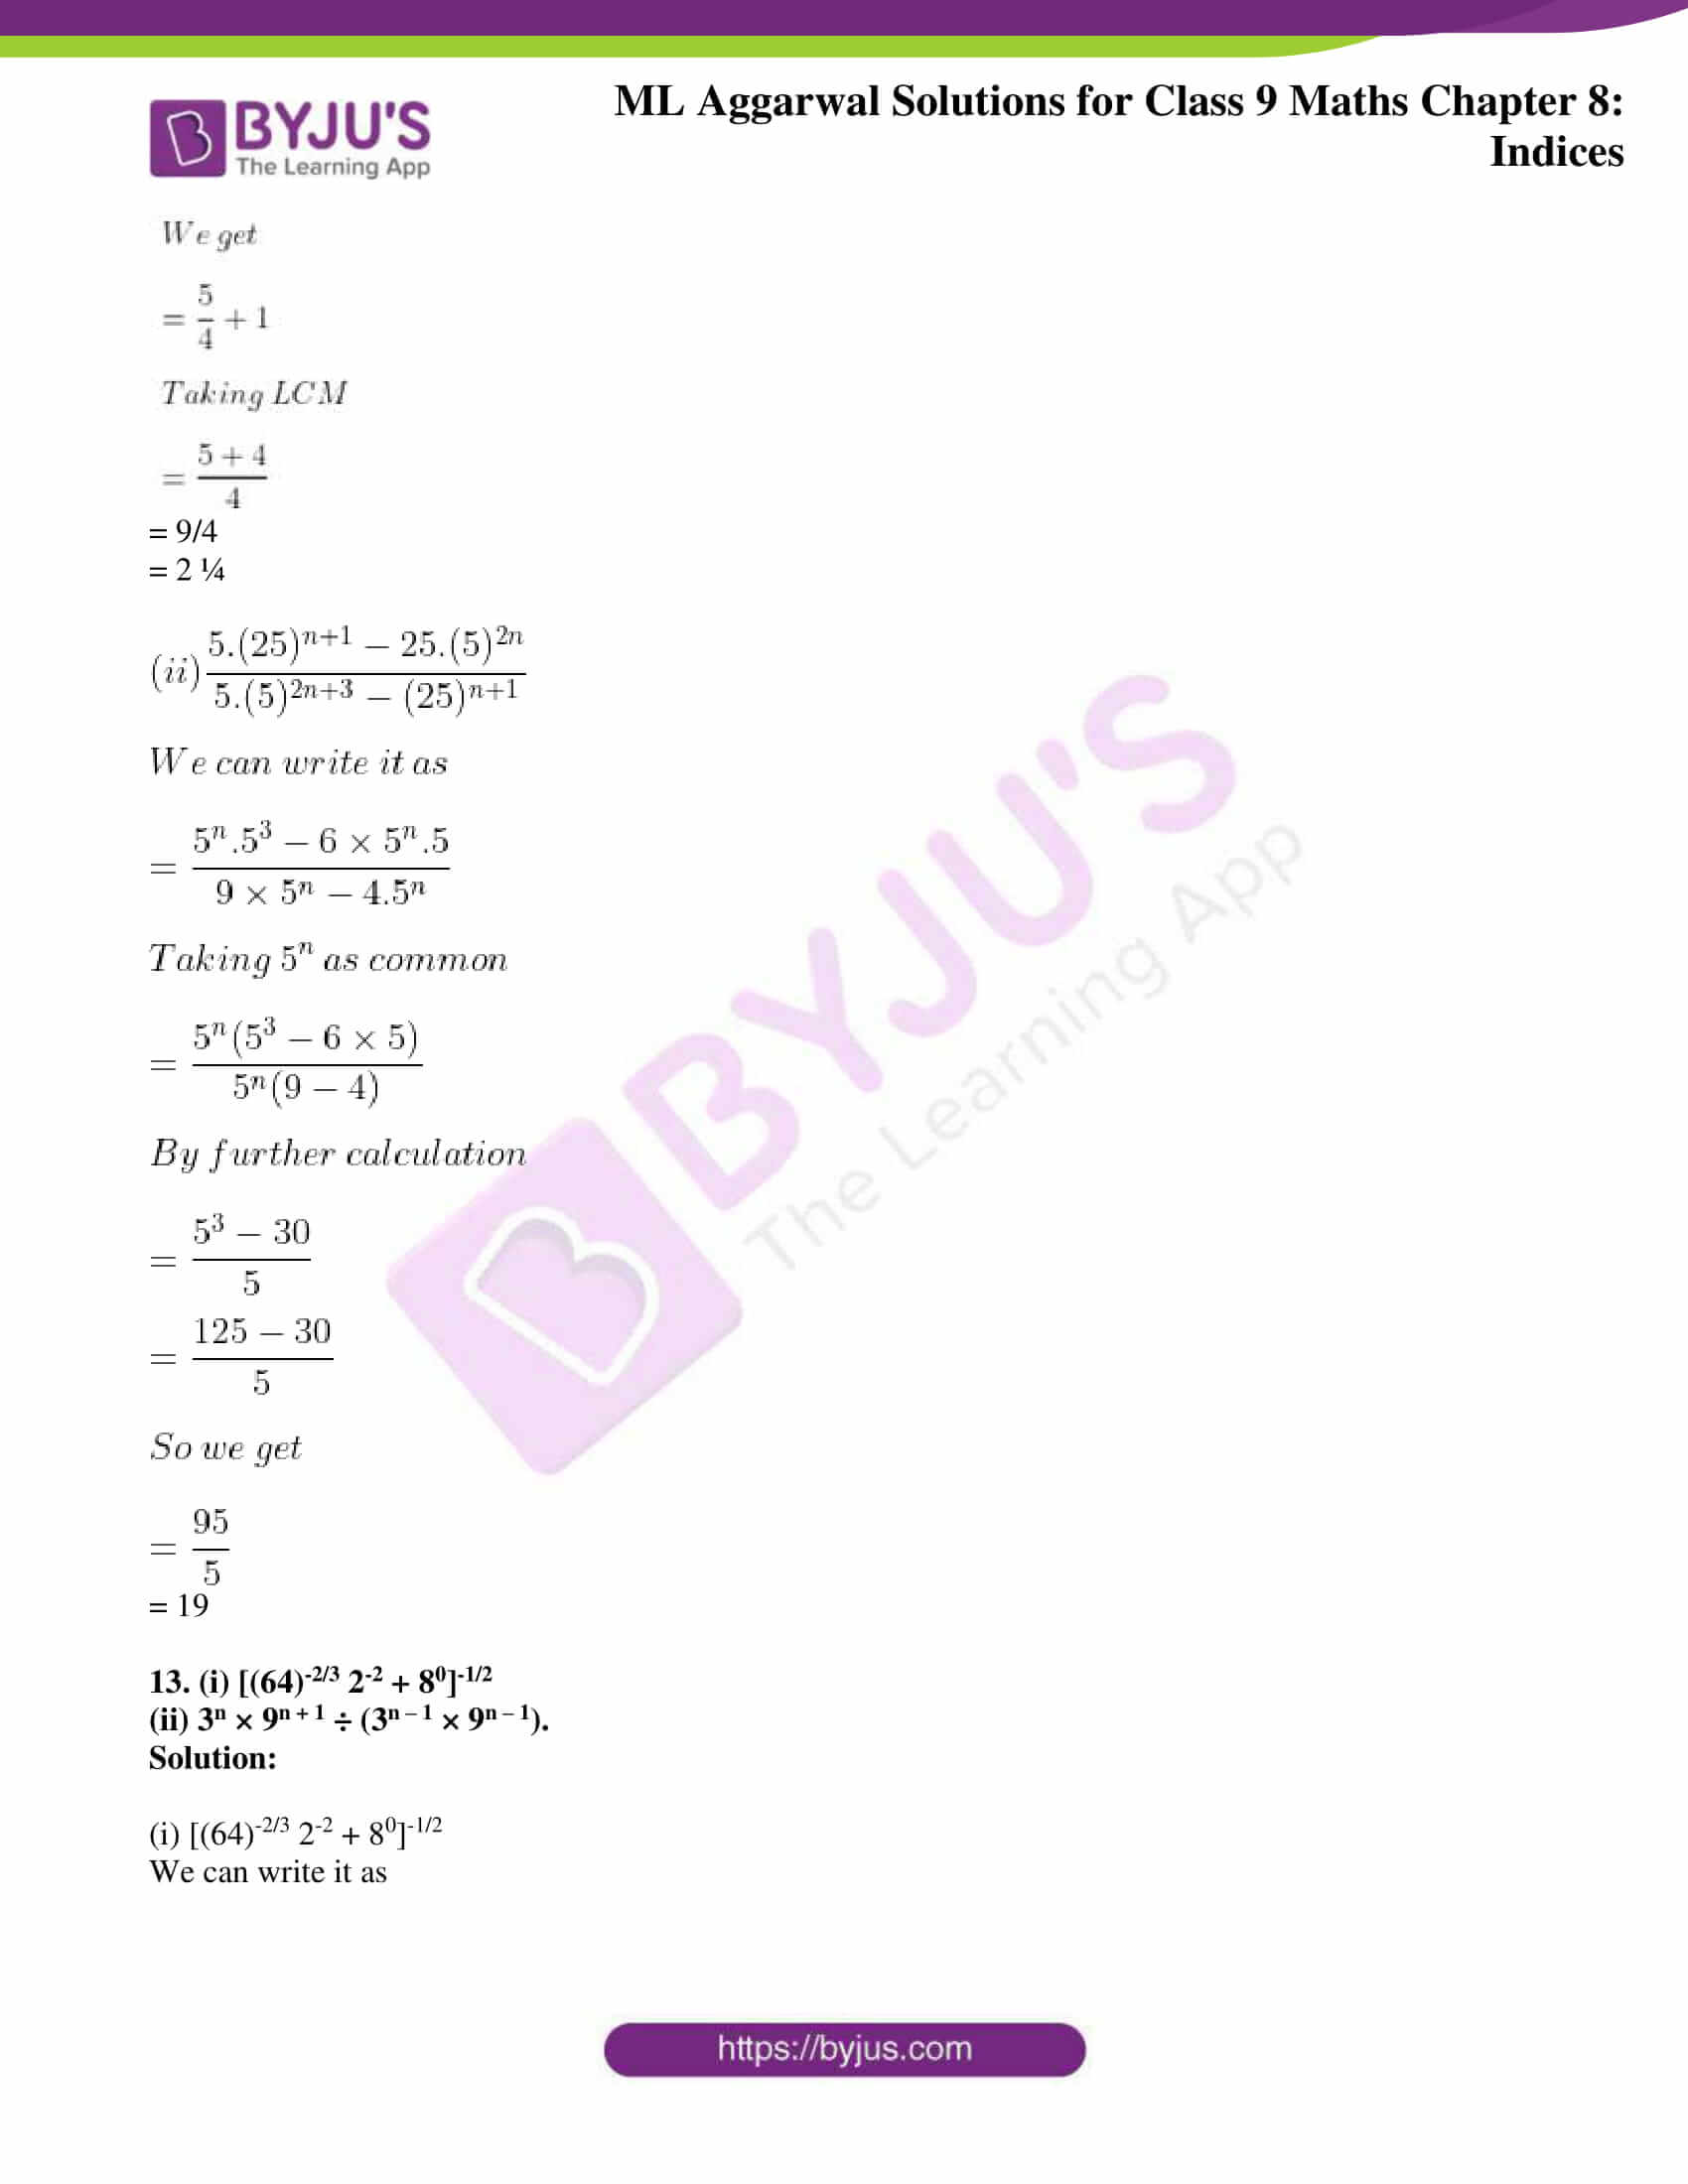 ml aggarwal solutions for class 9 maths chapter 8 12